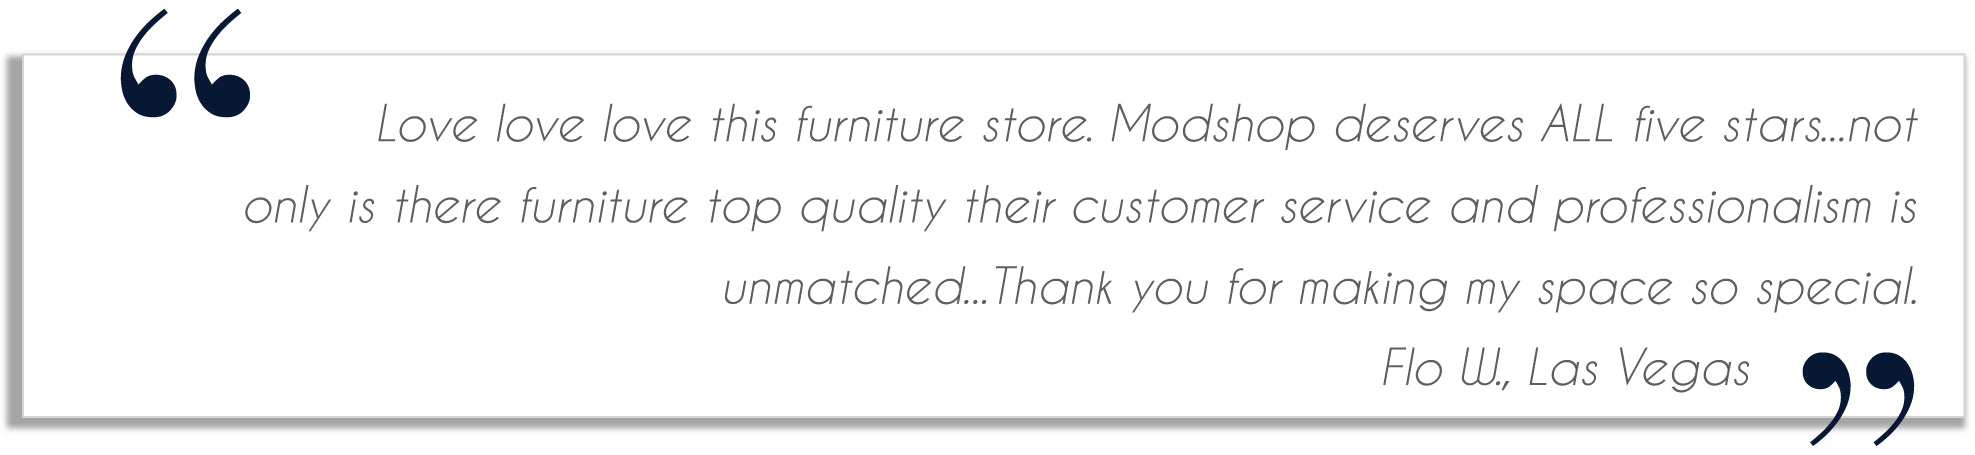 testimonial from stacy p on yelp. I just received my 5th piece of modshop furniture! I love the modshop! The quality is excellent and the designs are a unique combination of regal and modern!